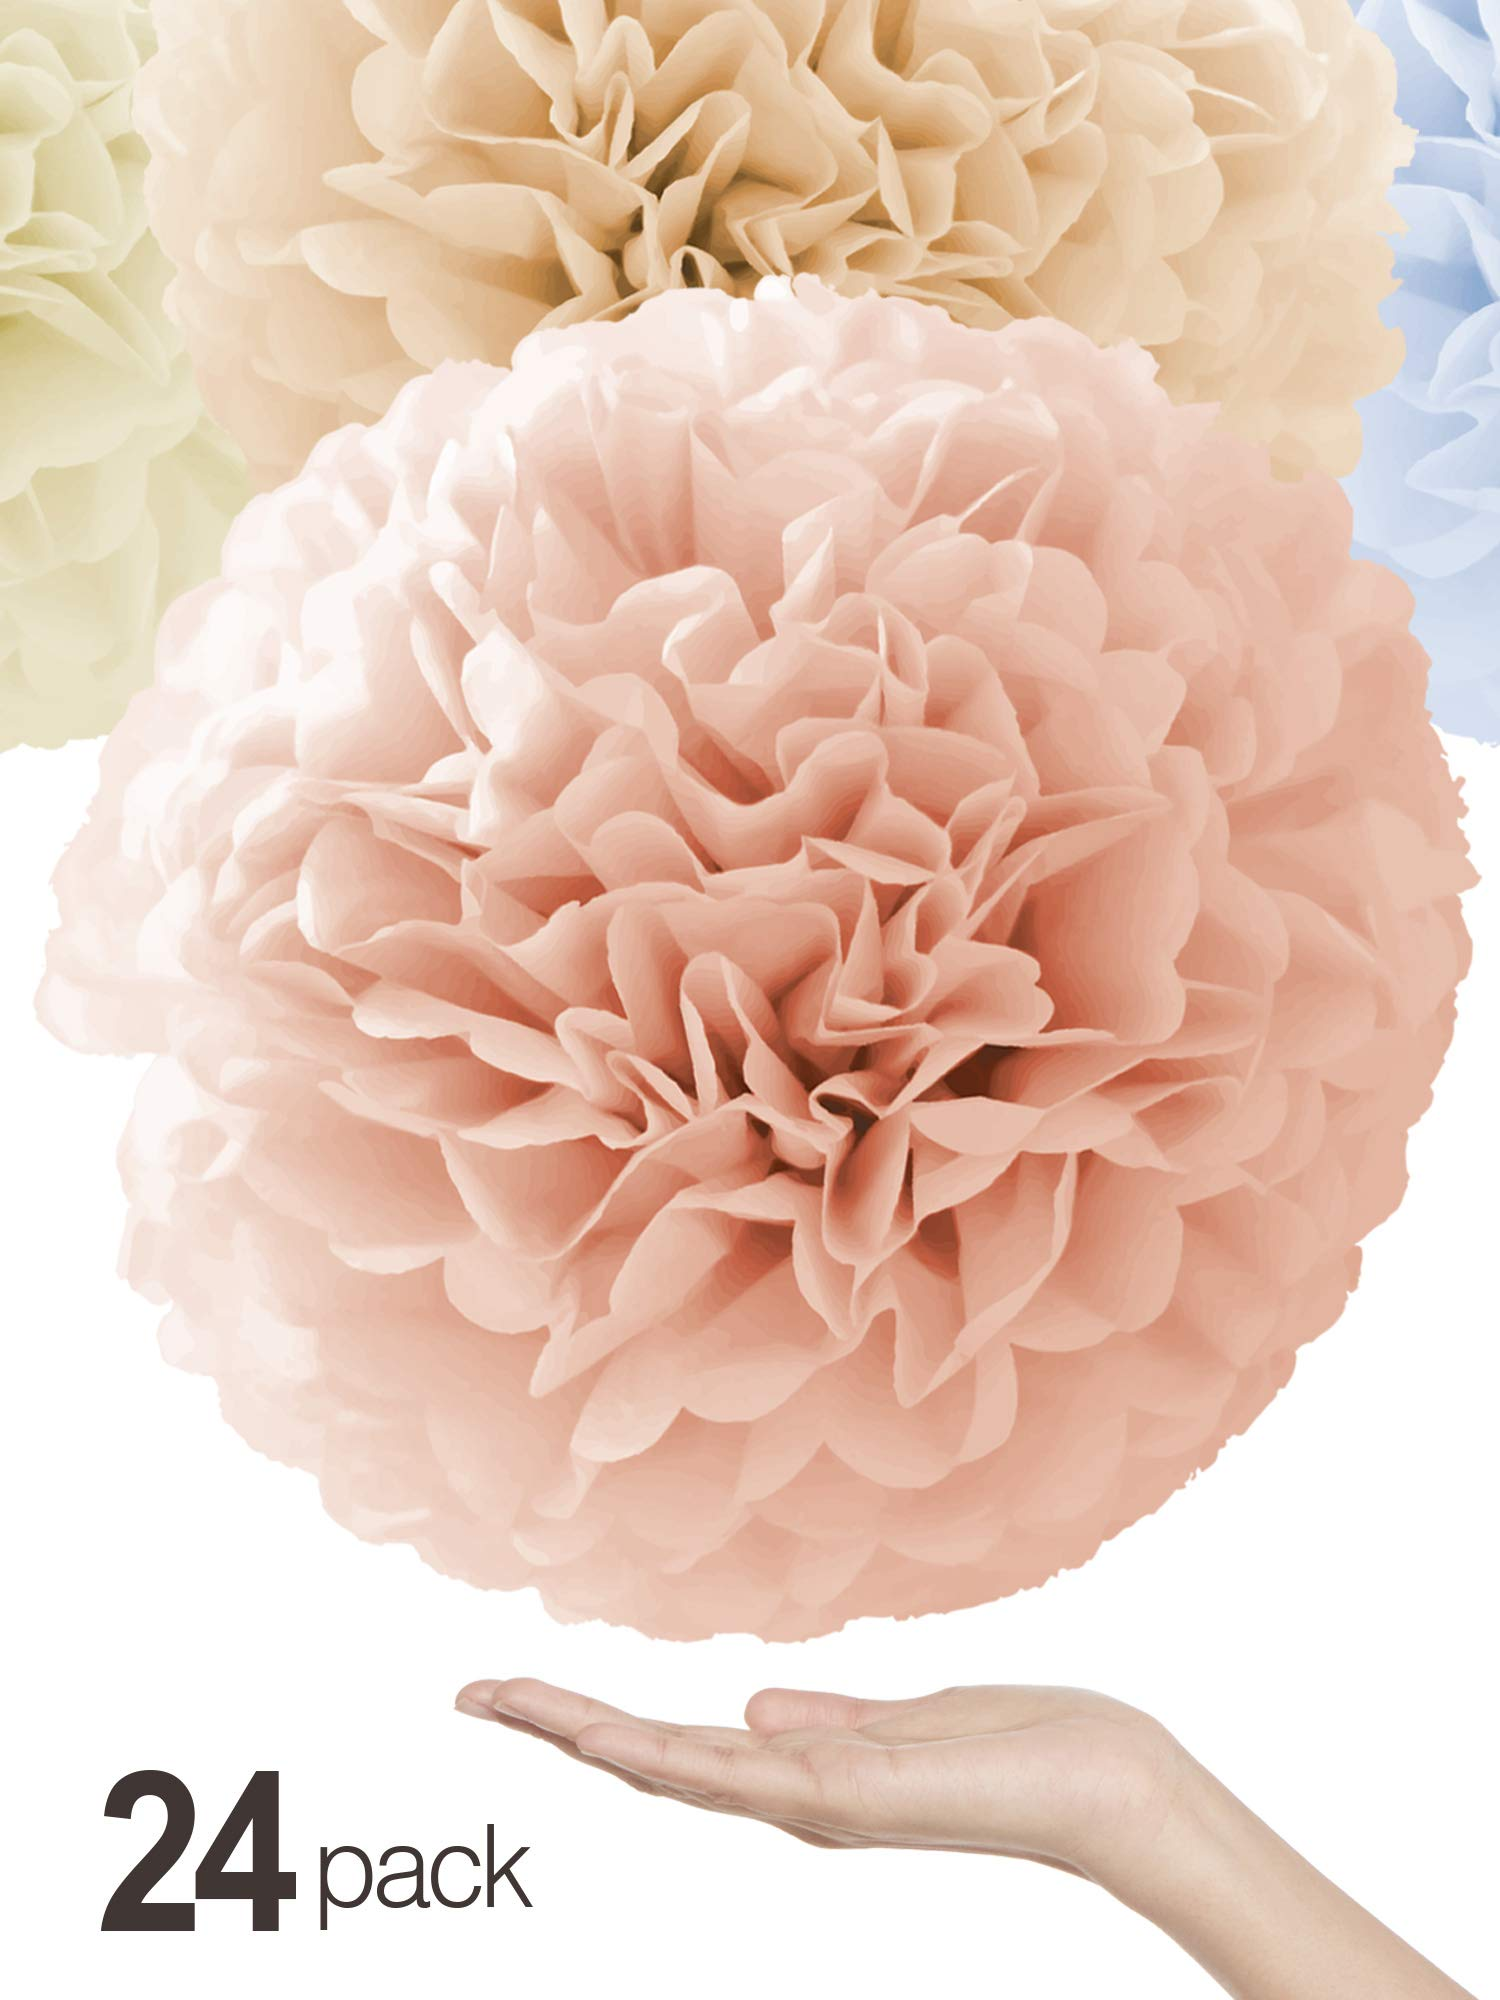 Natural Colors Tissue Paper Pom Poms [24 Pack - Sizes 14'', 10'', 8'', 6'' in White, Champagne, Peach, Ivory] Quality Party Pompoms - Perfect Paper Flowers for Weddings, Showers & Room Decorations